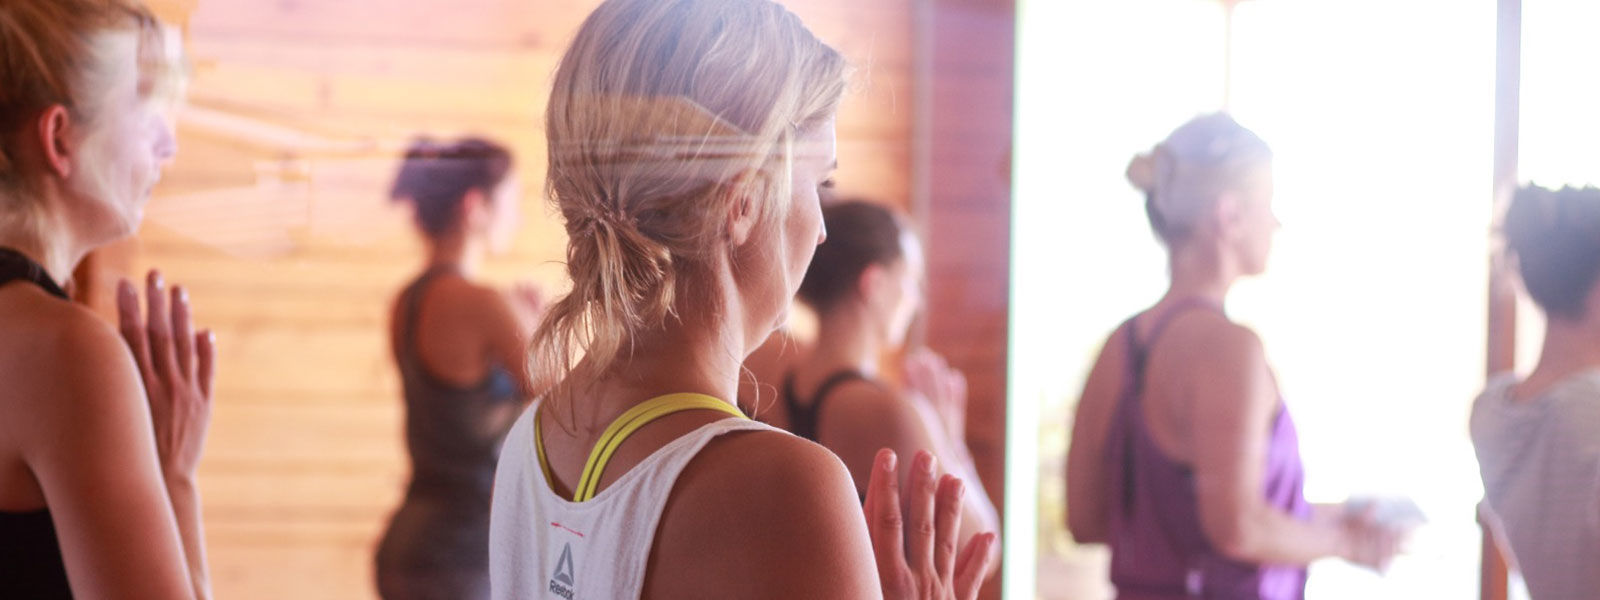 [Translate to English:] Yoga Urlaub in Spanien